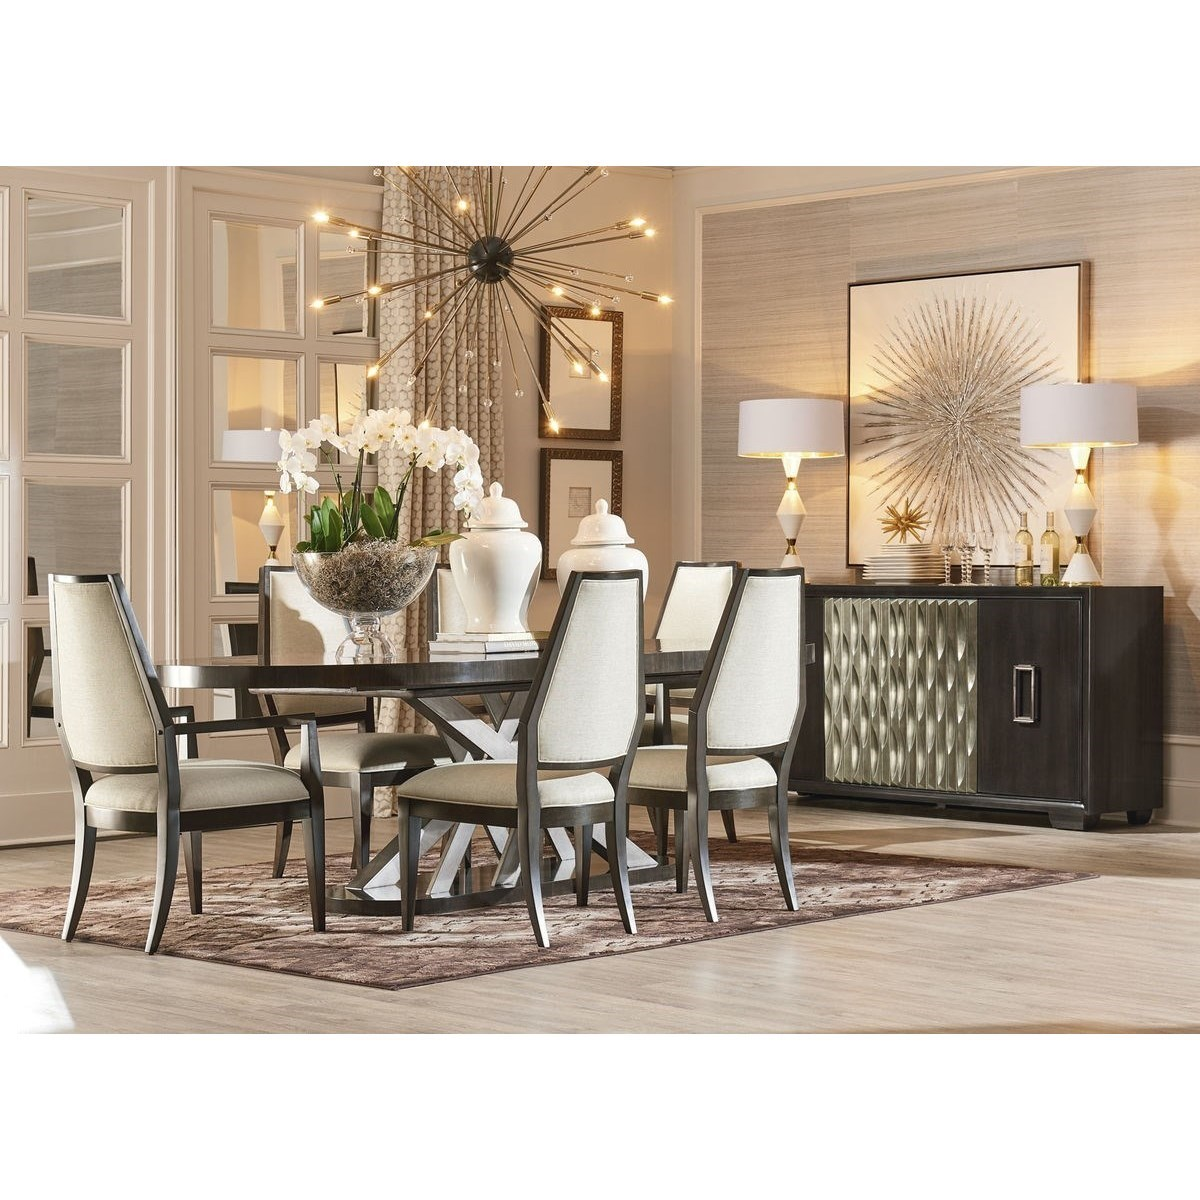 Formal Furniture: A.R.T. Furniture Inc Prossimo Formal Dining Room Group